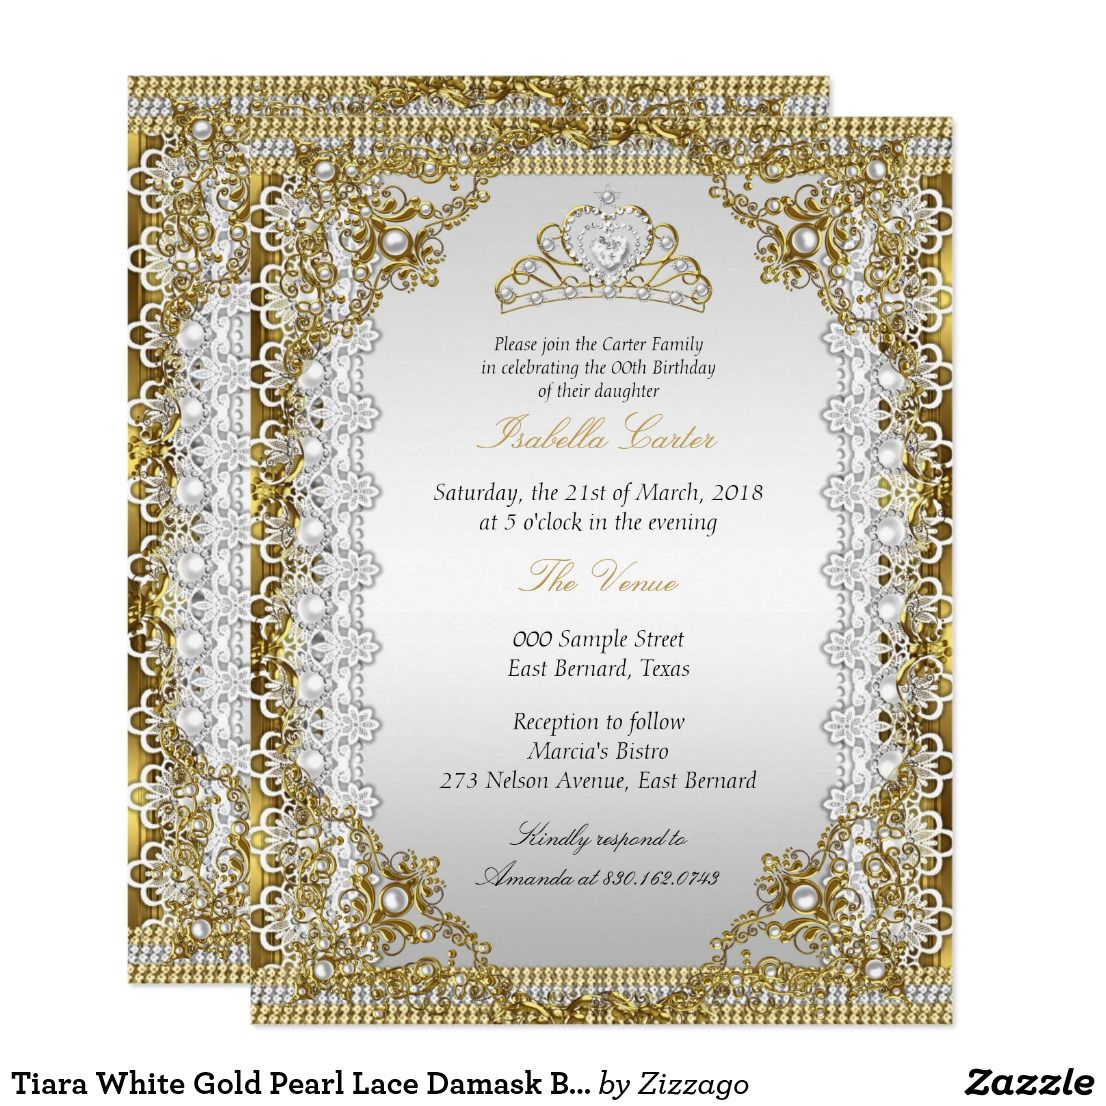 Tiara White Gold Pearl Lace Damask Birthday Party Card   Birthday ...